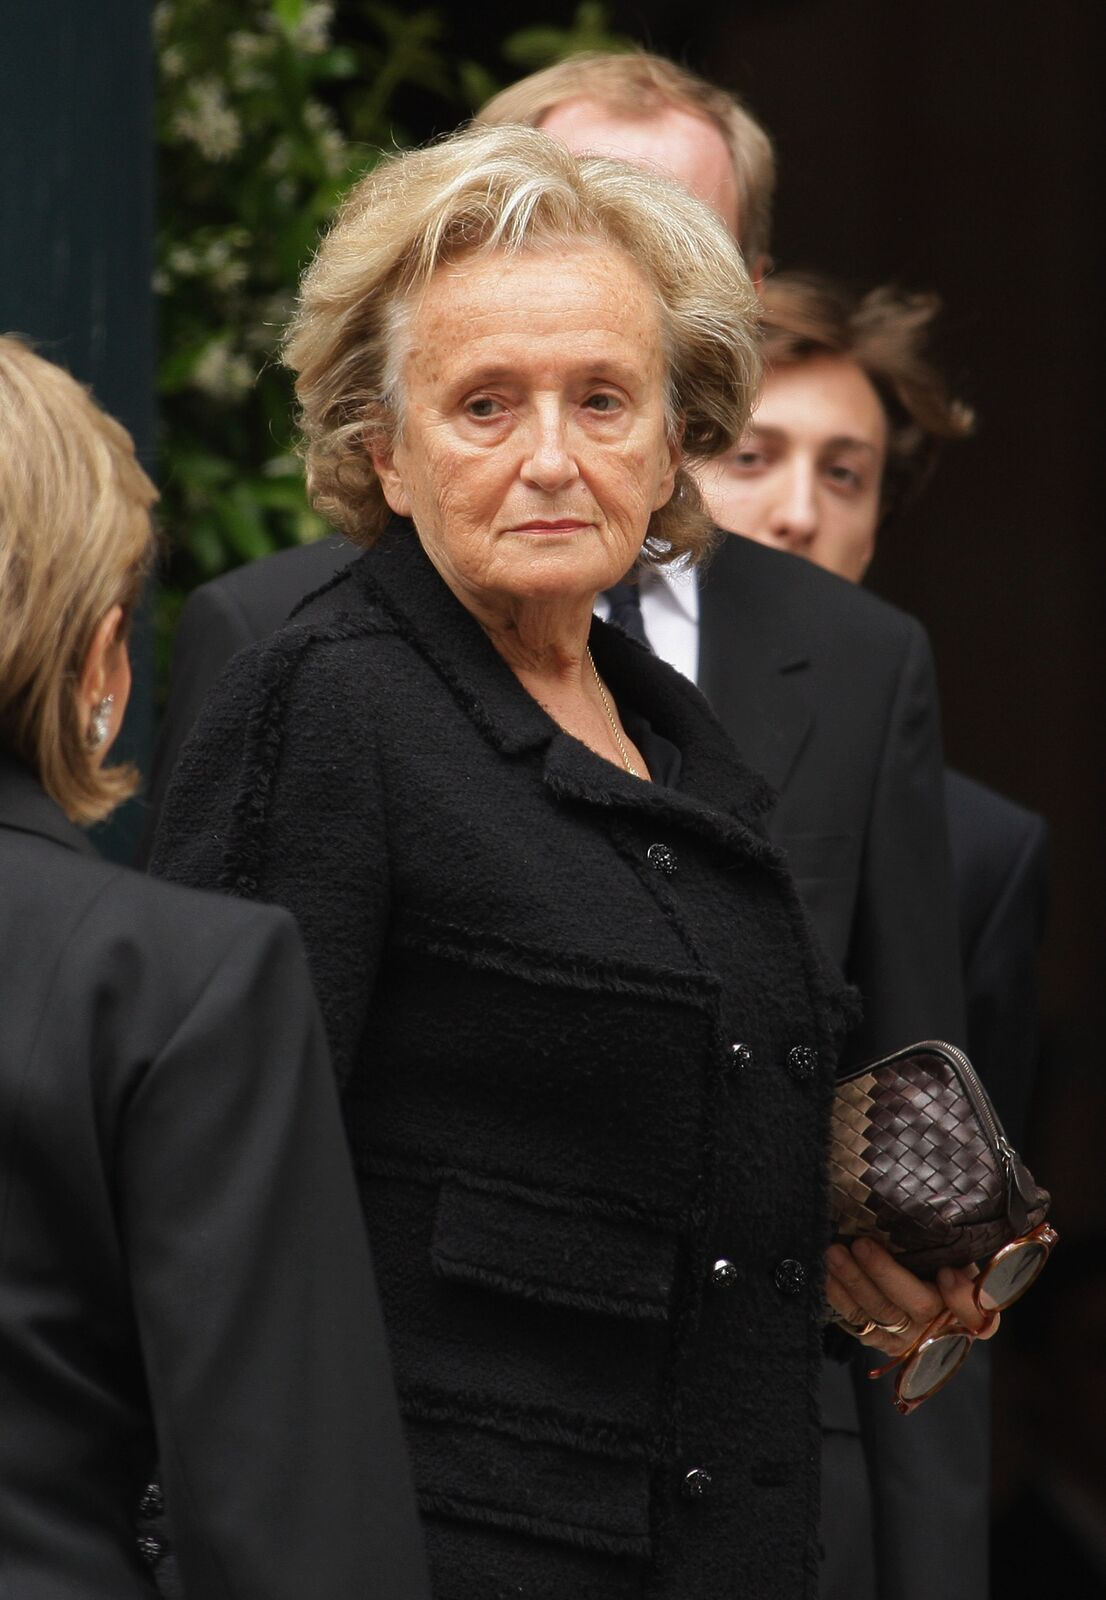 Bernadette Chirac assiste aux funérailles d'Yves Saint Laurent le 5 juin 2008 à l'église Saint-Roch à Paris, France. | Photo : GettyImage